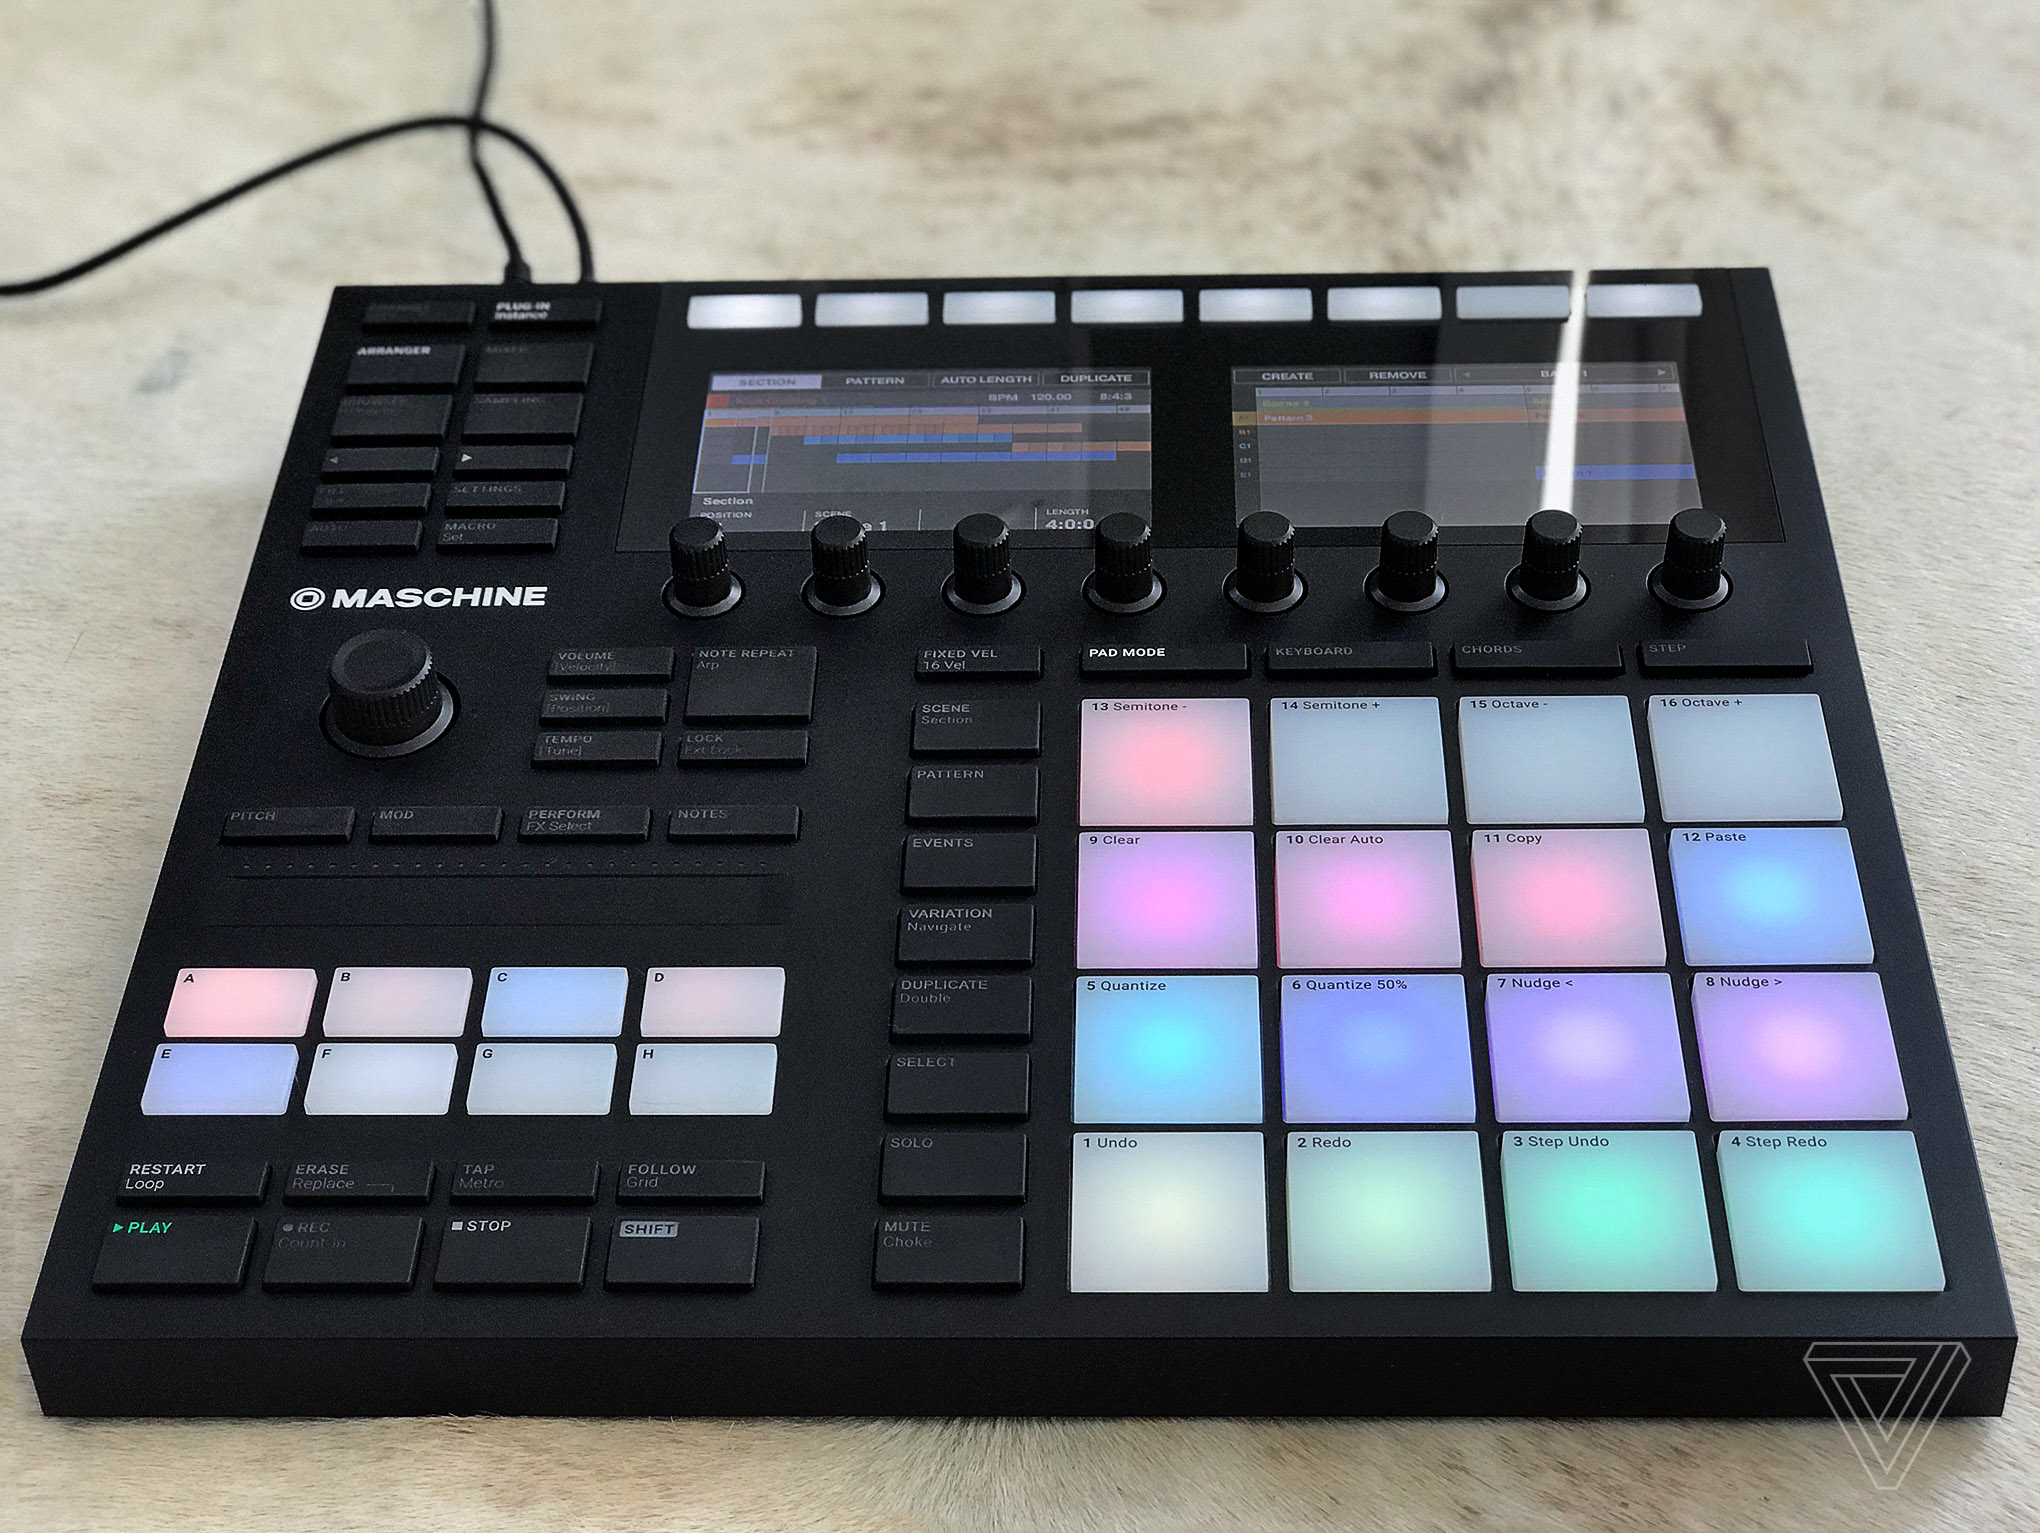 Native Instruments Maschine MK3 review: an all-in-one music-making playground